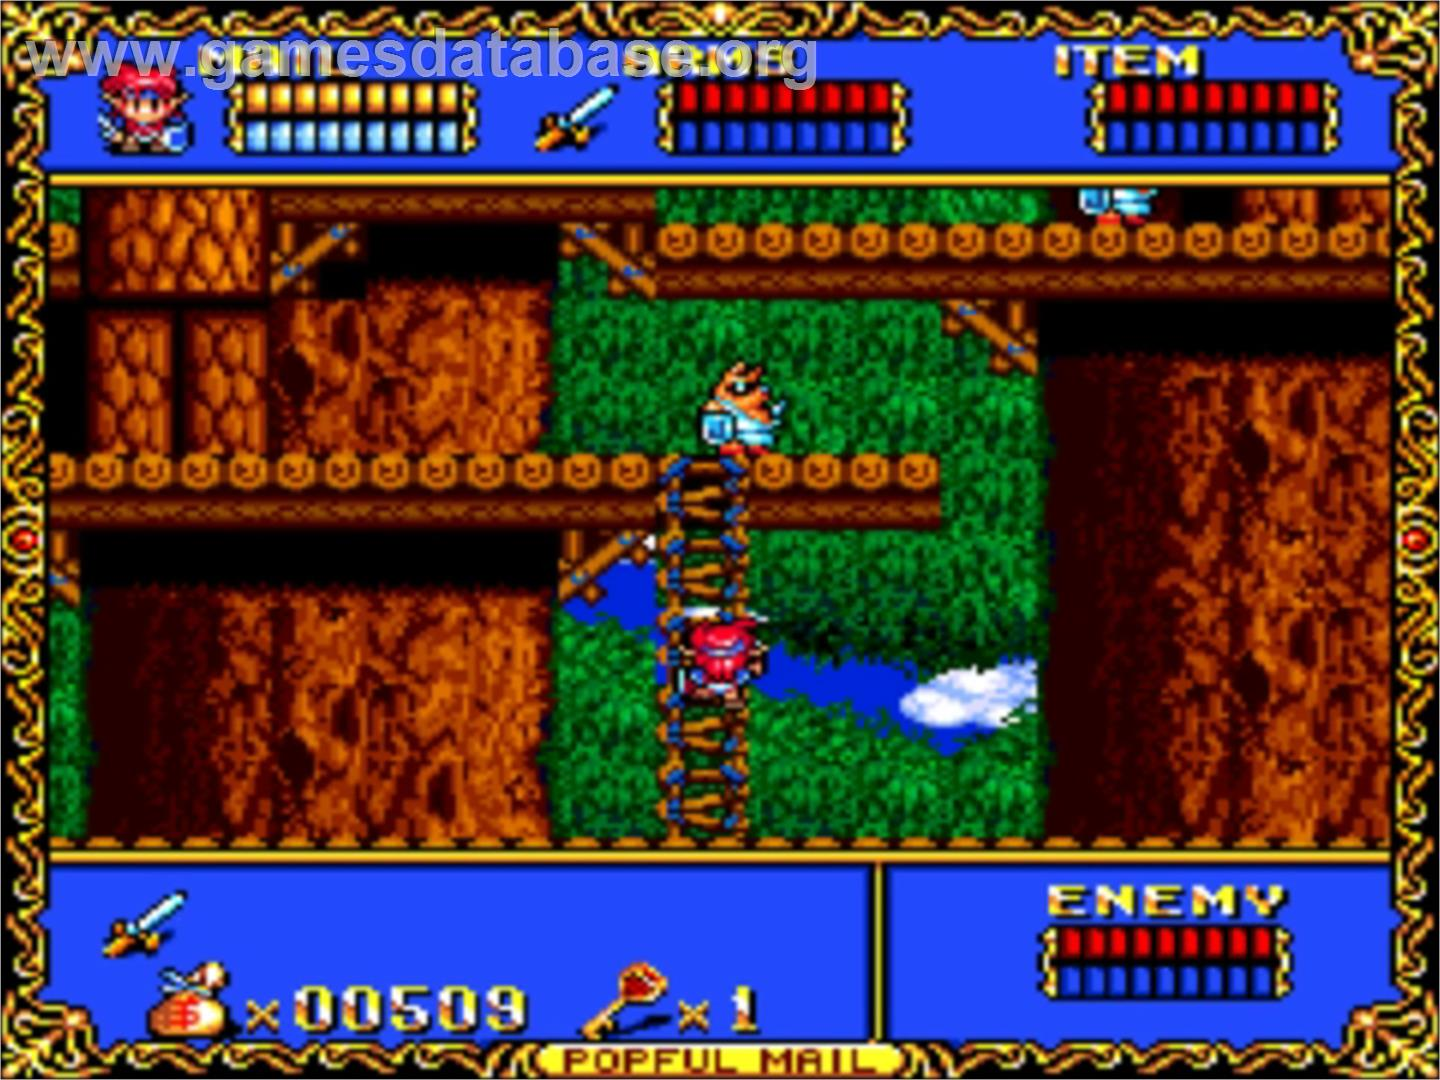 Download pc engine cd games